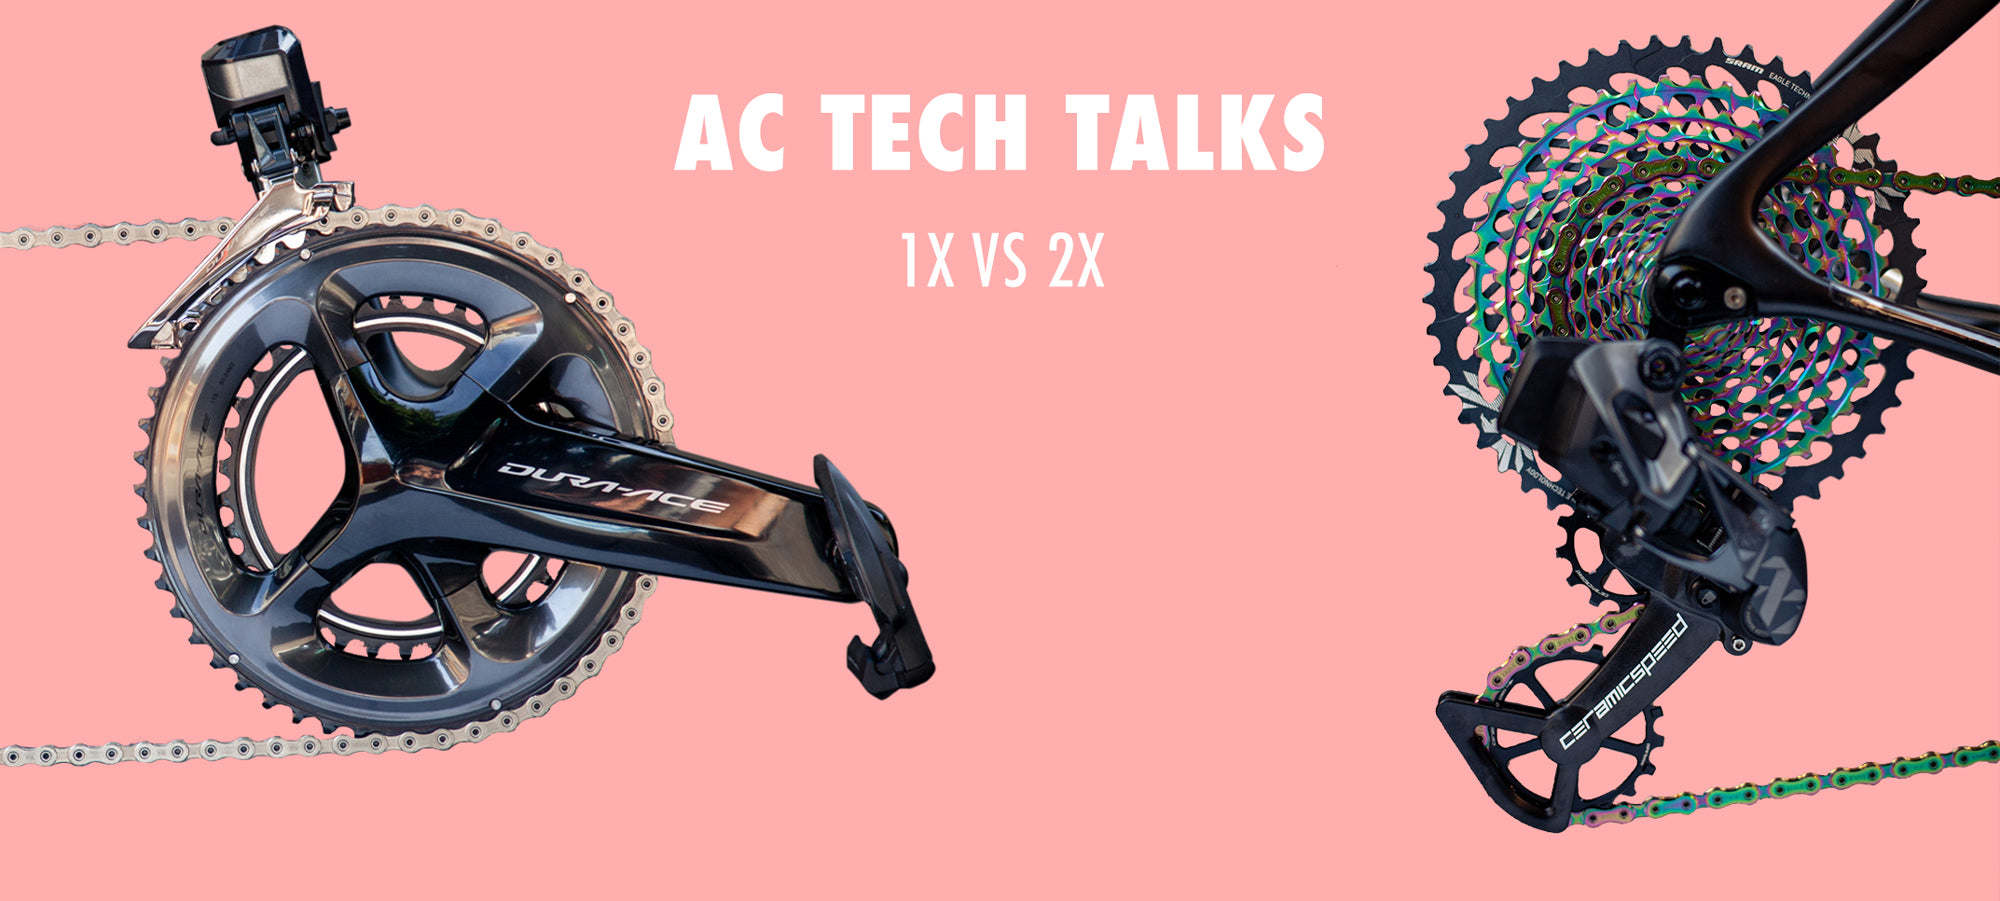 ac tech talks 1x vs 2x